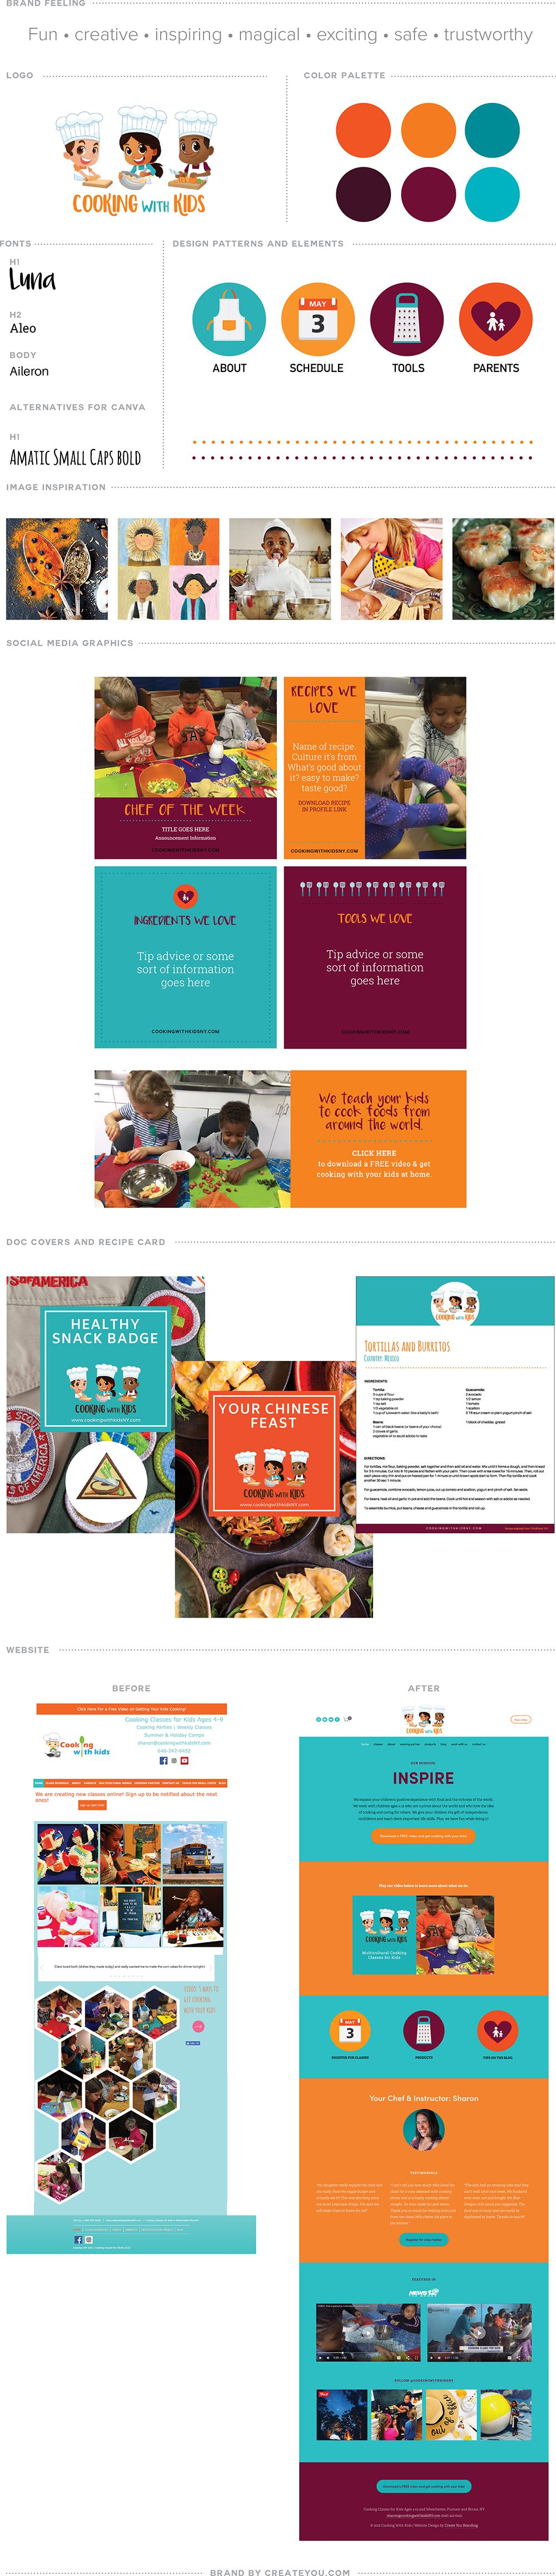 cooking with kids brand board.jpg